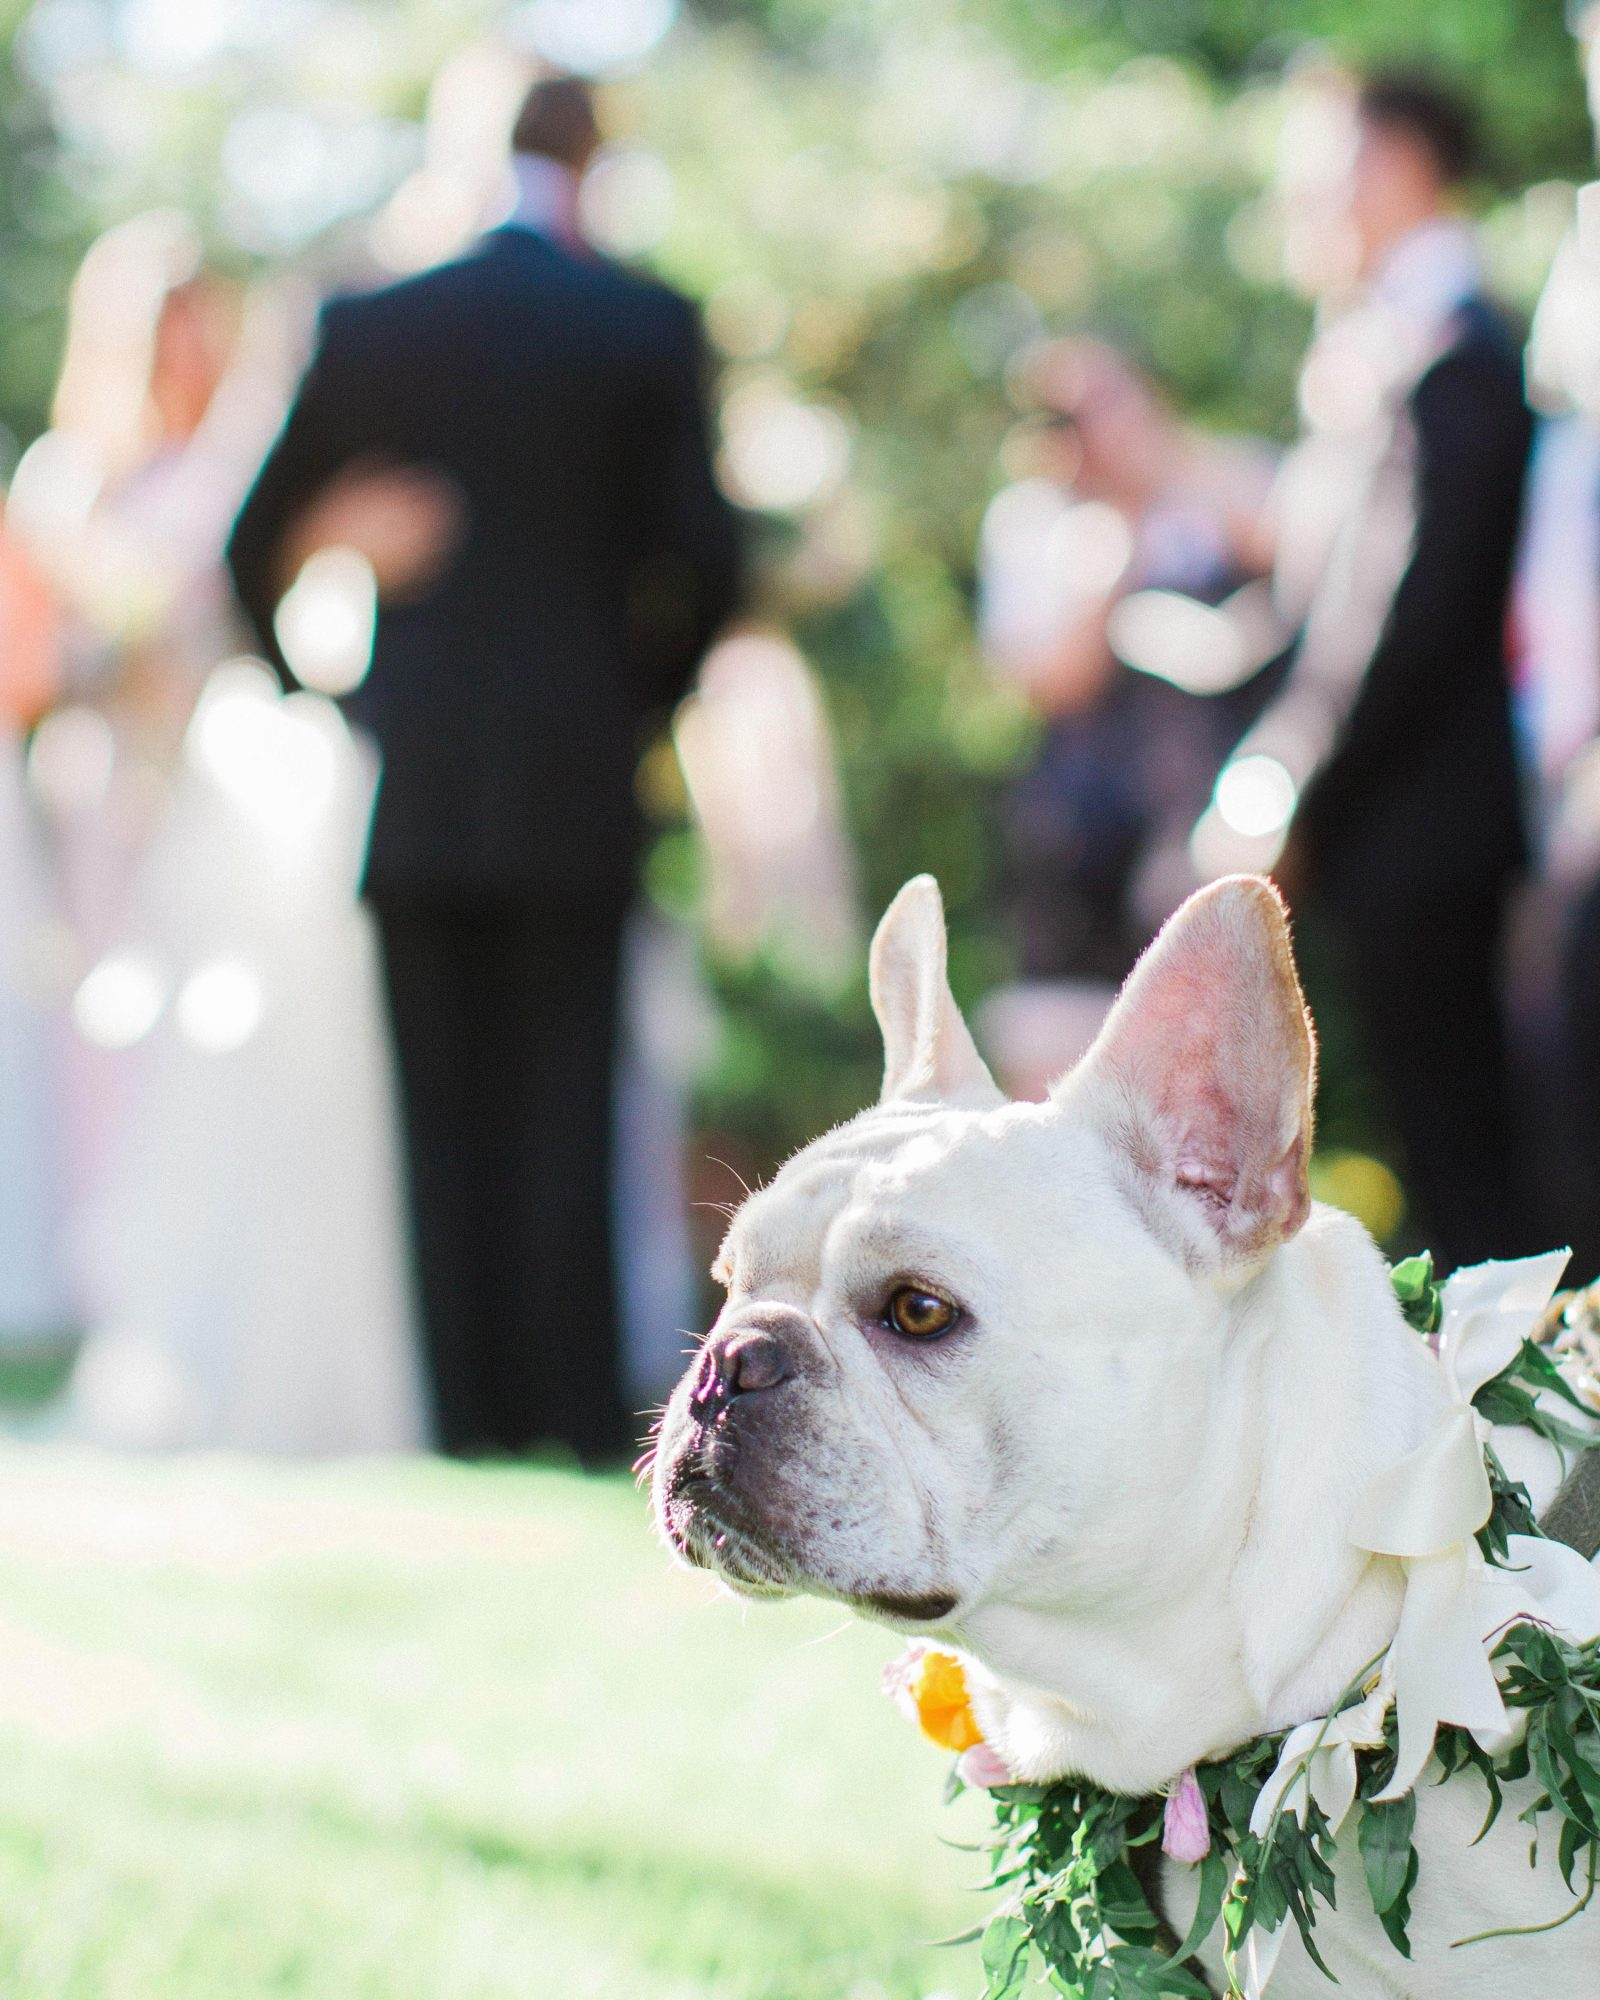 amy-garrison-wedding-dog-00503-6134266-0816.jpg